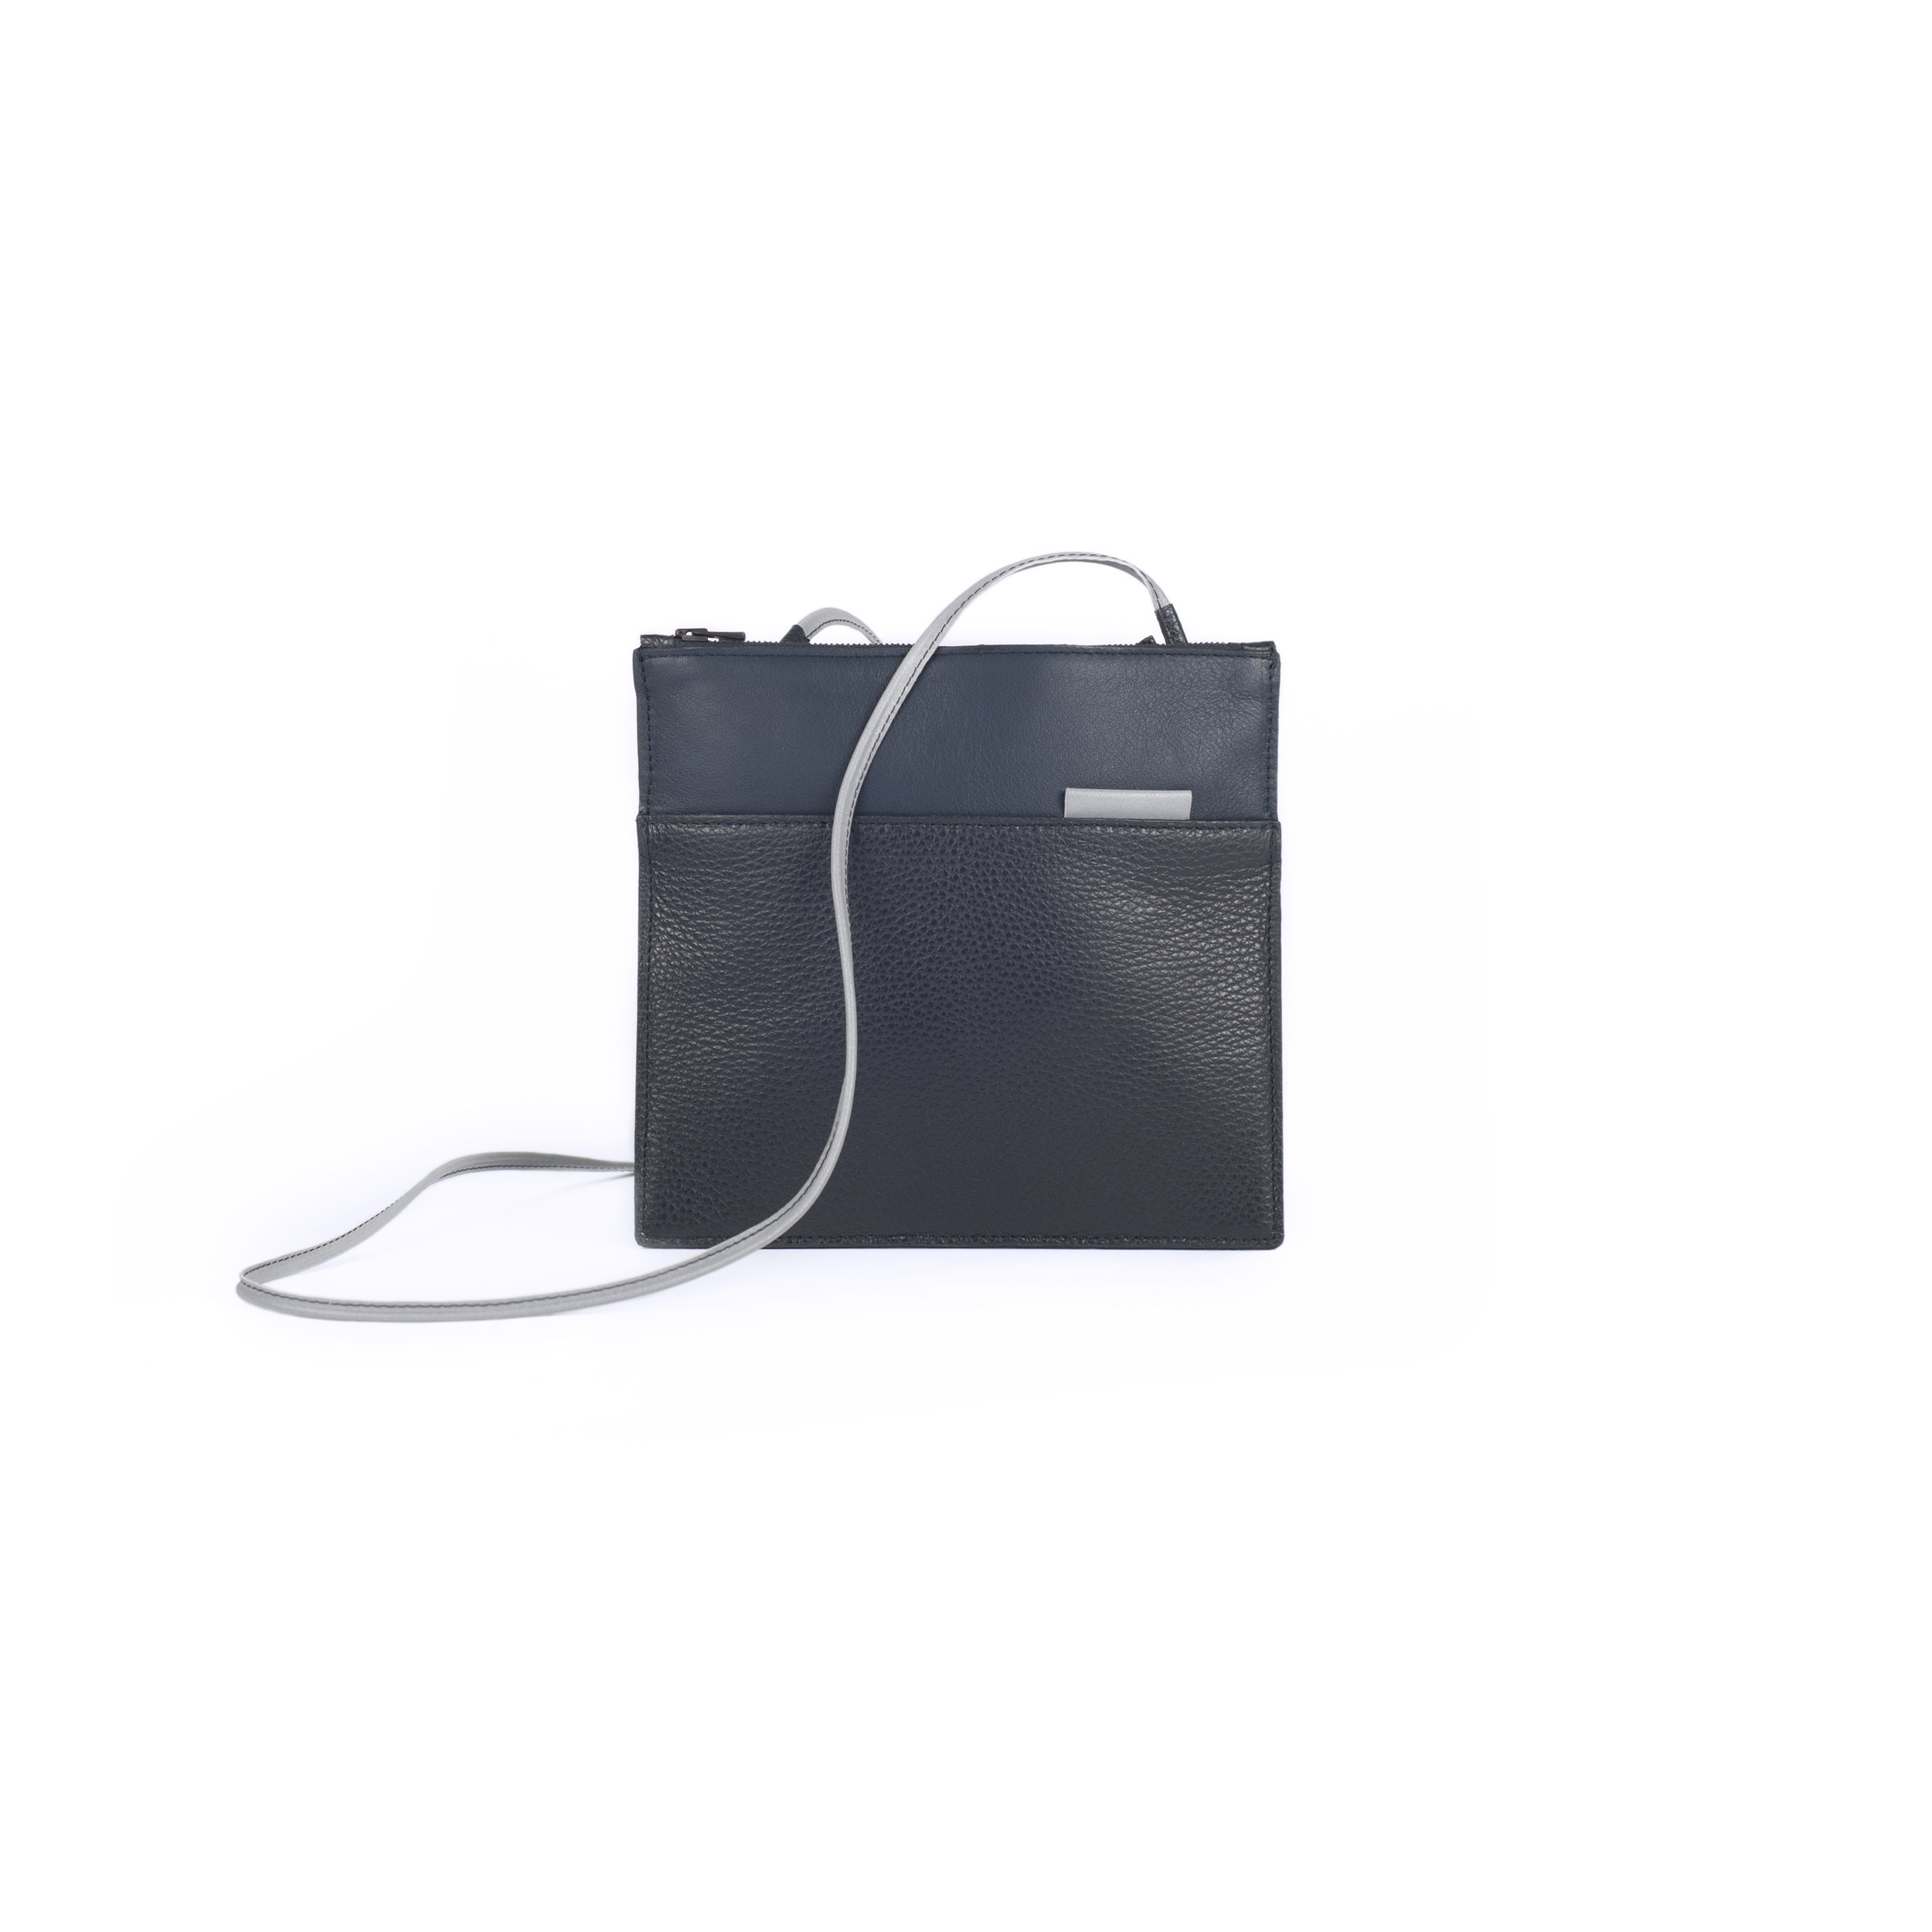 leather clutch handbag with reflective details | Bobby